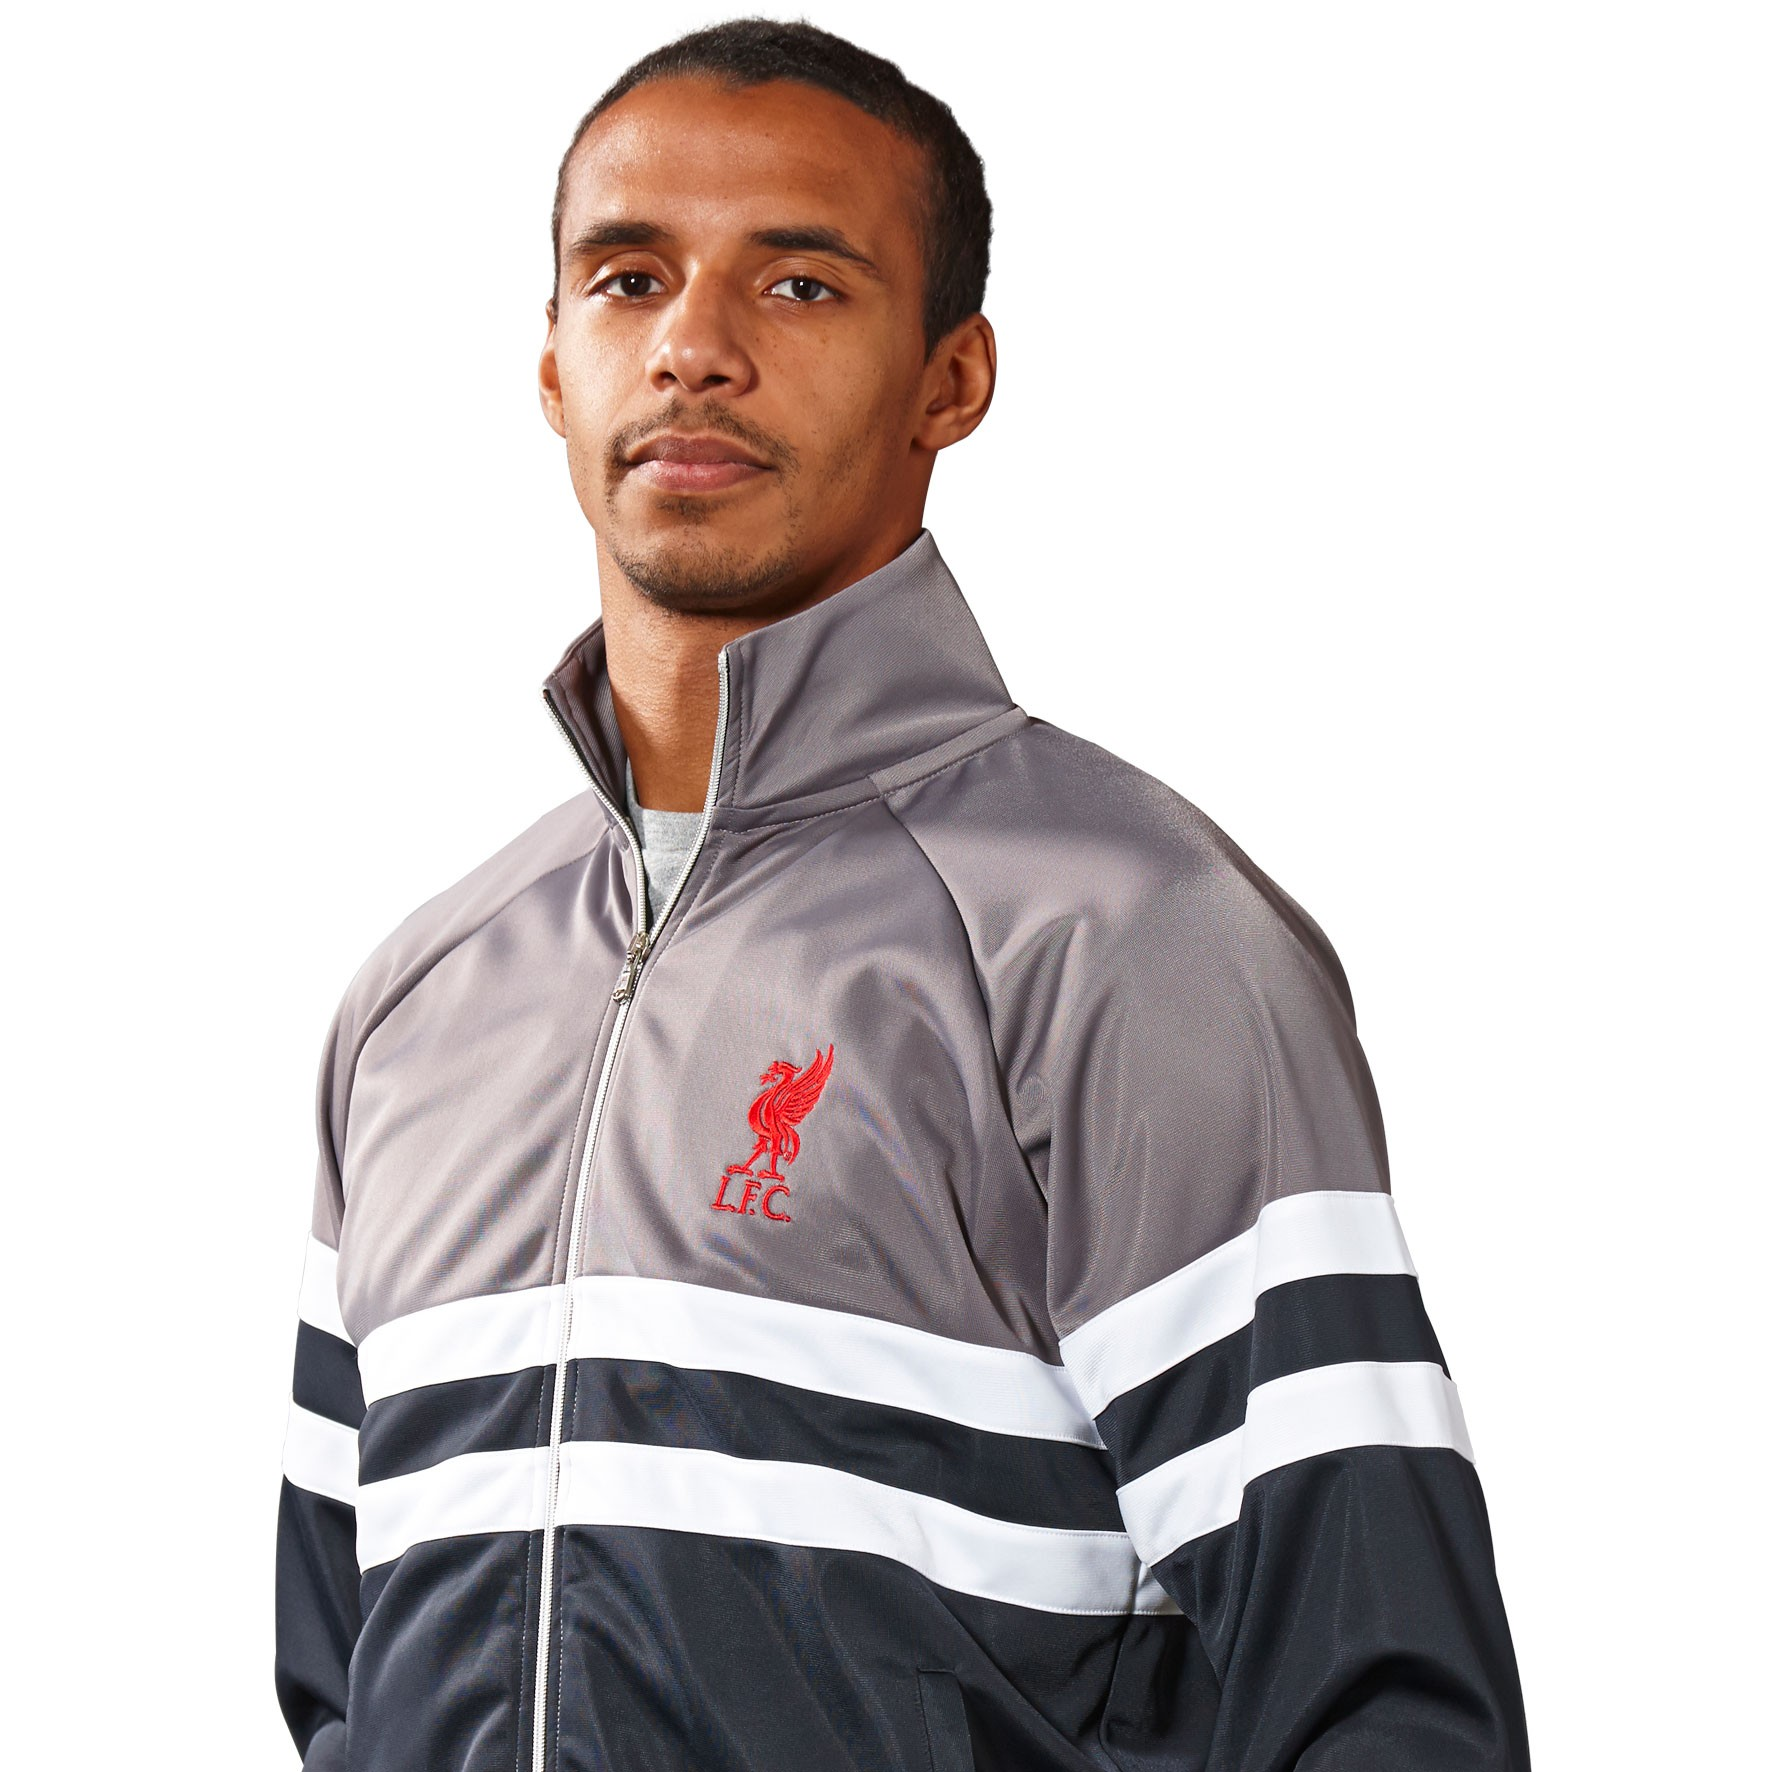 LFC Mens Grey Halfpipe Jacket